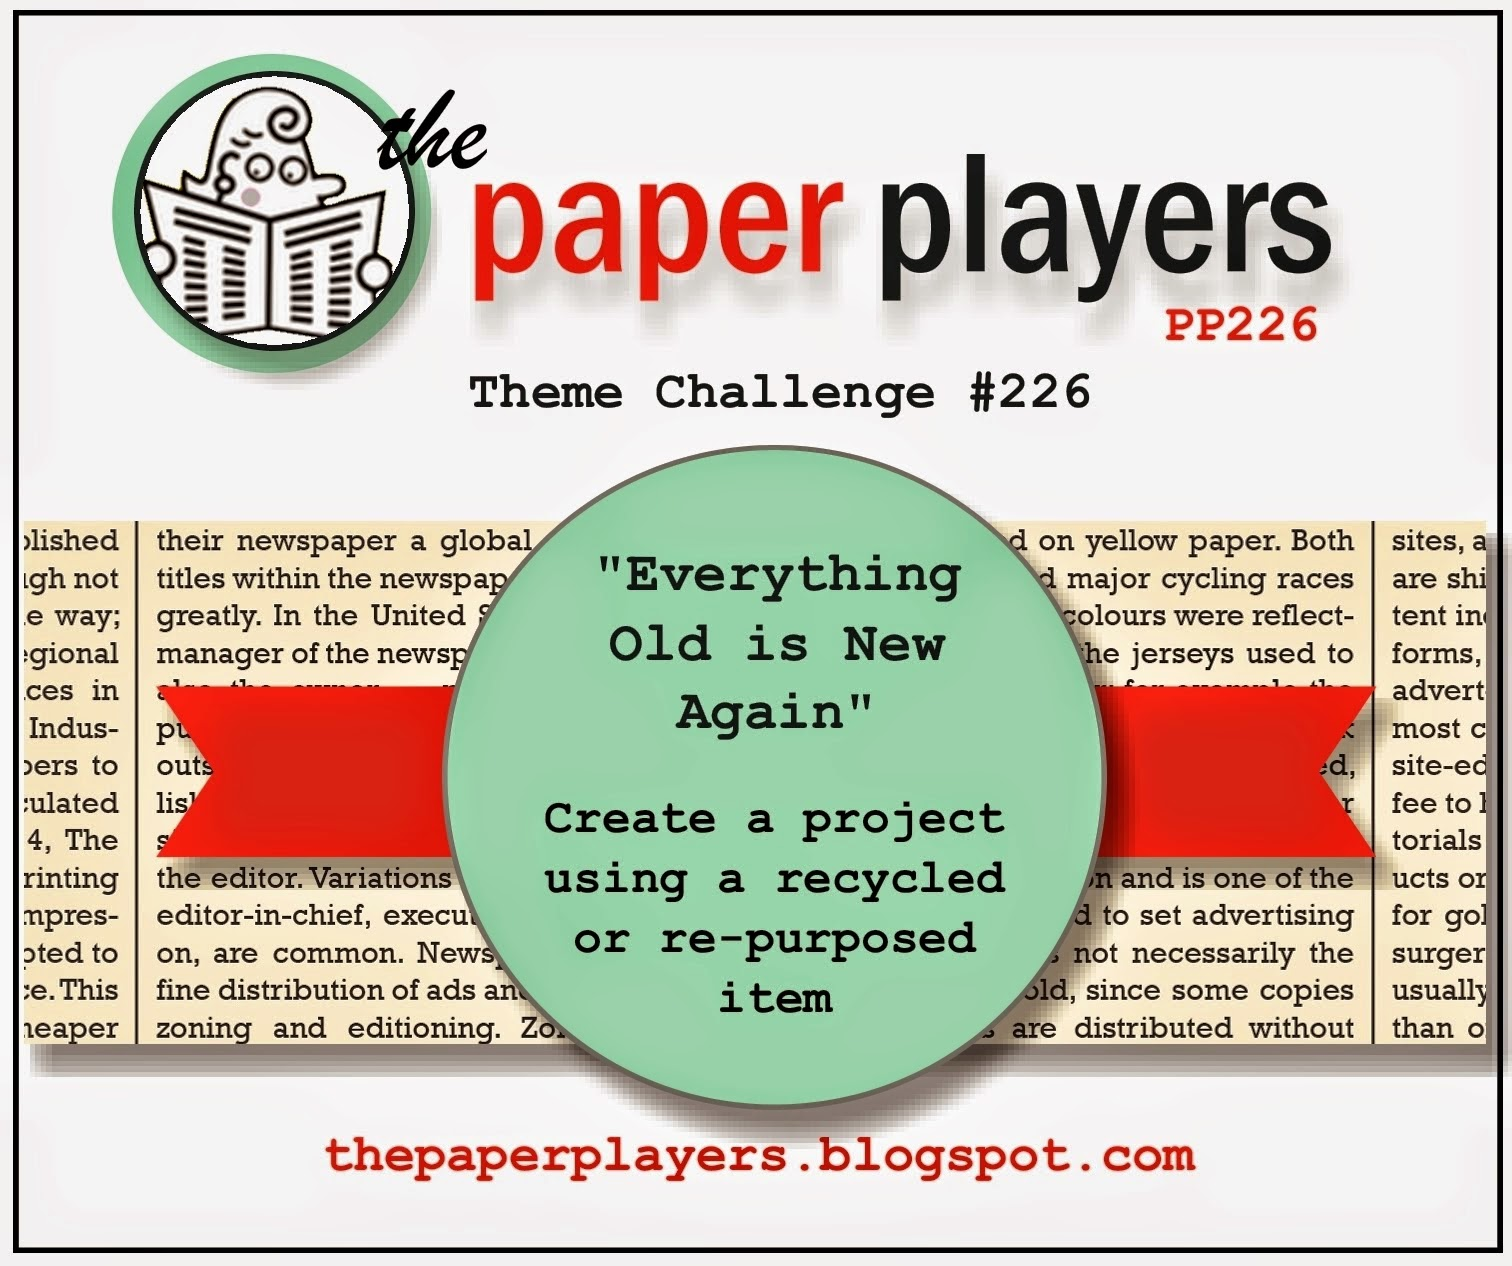 http://thepaperplayers.blogspot.ca/2015/01/paper-players-226-anne-maries-theme.html